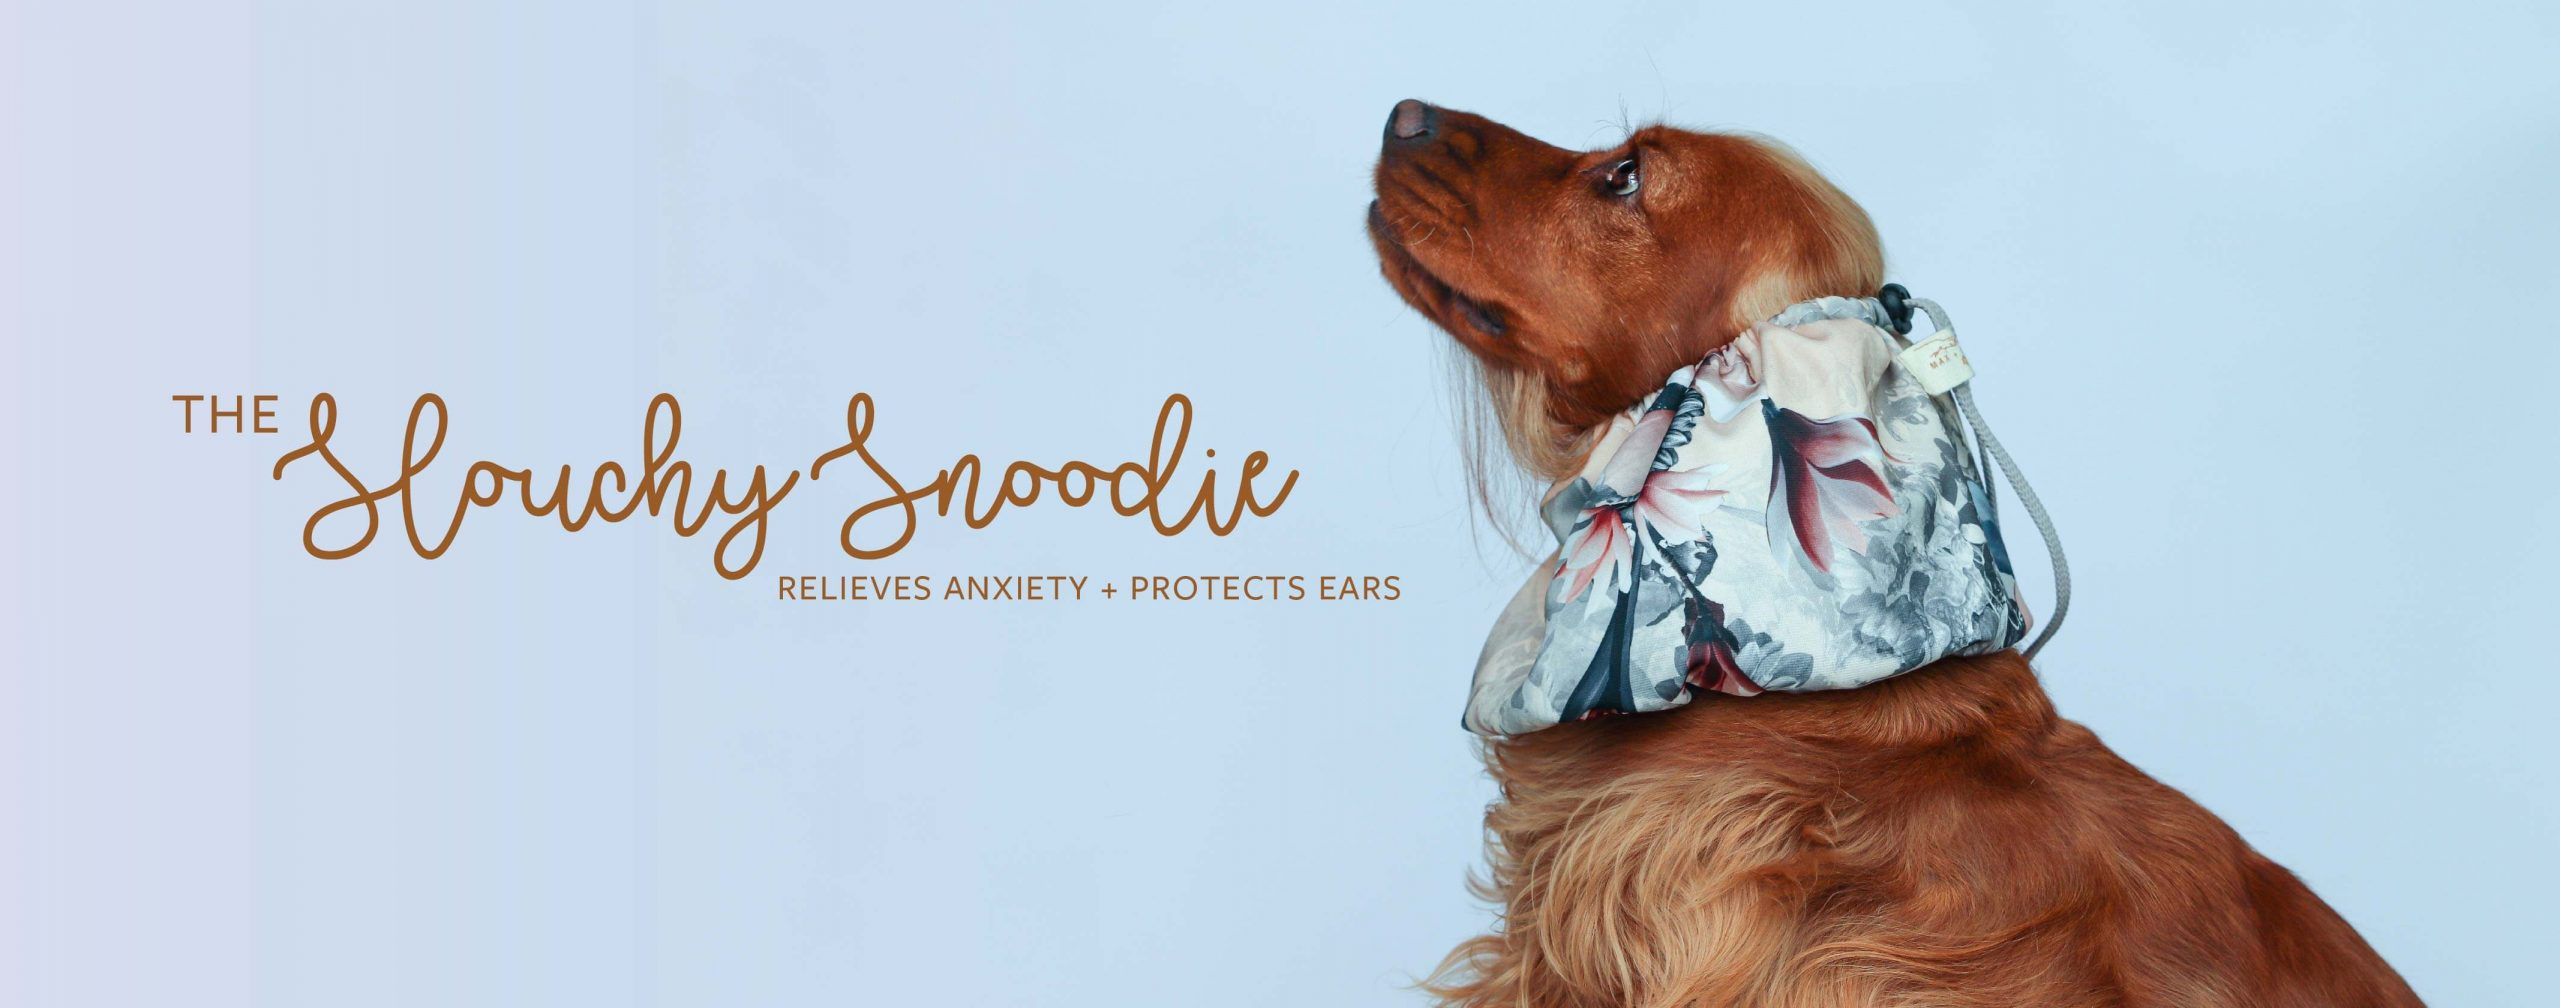 MAX_AND_WILLOW_SLOUCHY_SNOODIE_HEADER